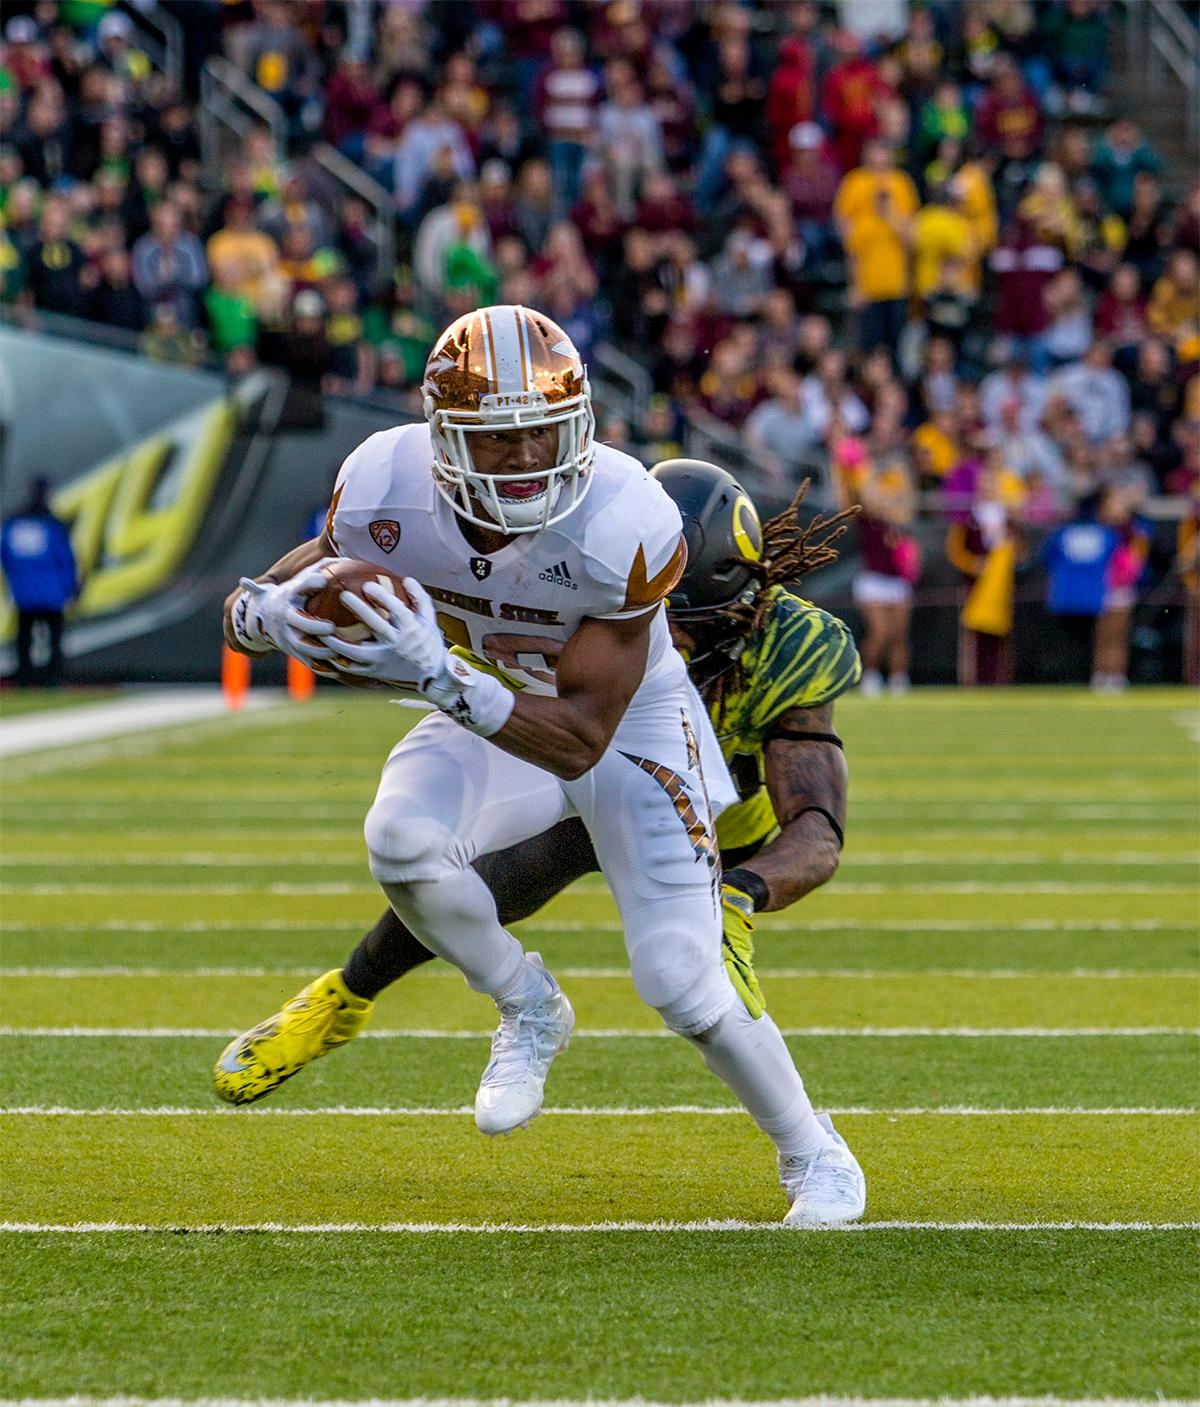 The Sun Devils' Kyle Williams (#10) runs the ball down the field as the Ducks tackle him. The Oregon Ducks broke their losing streak by defeating the ASU Sun Devils on Saturday 54-35. Photo by August Frank, Oregon News Lab